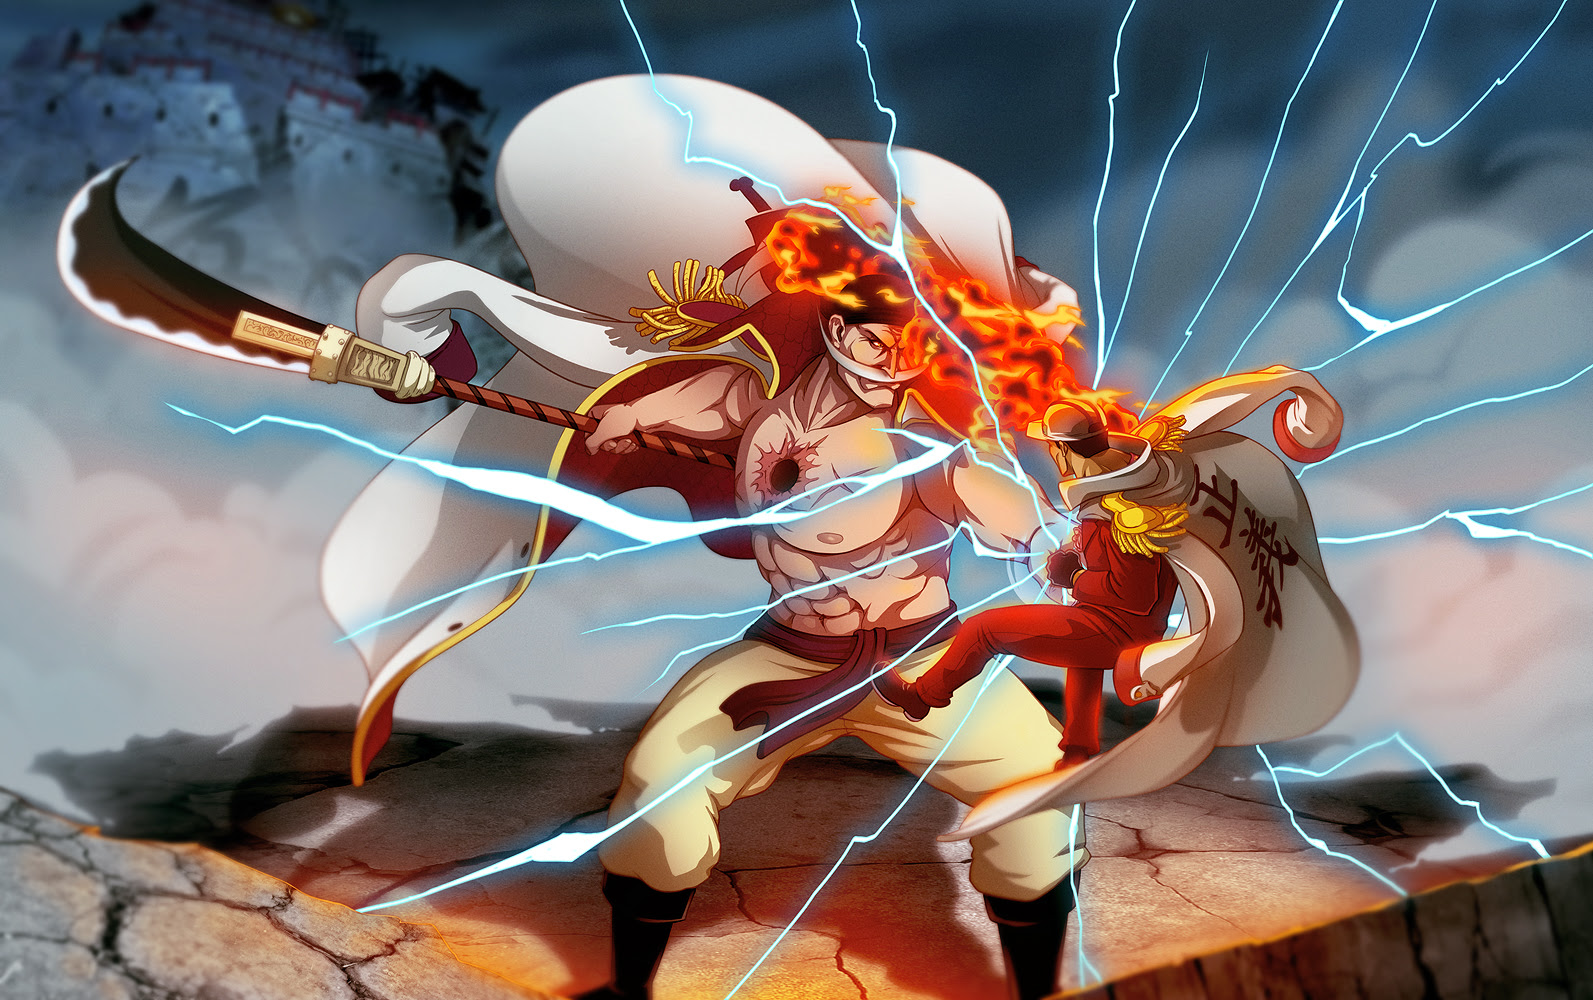 One Piece Images Whitebeard Vs Akainu Hd Wallpaper And Background